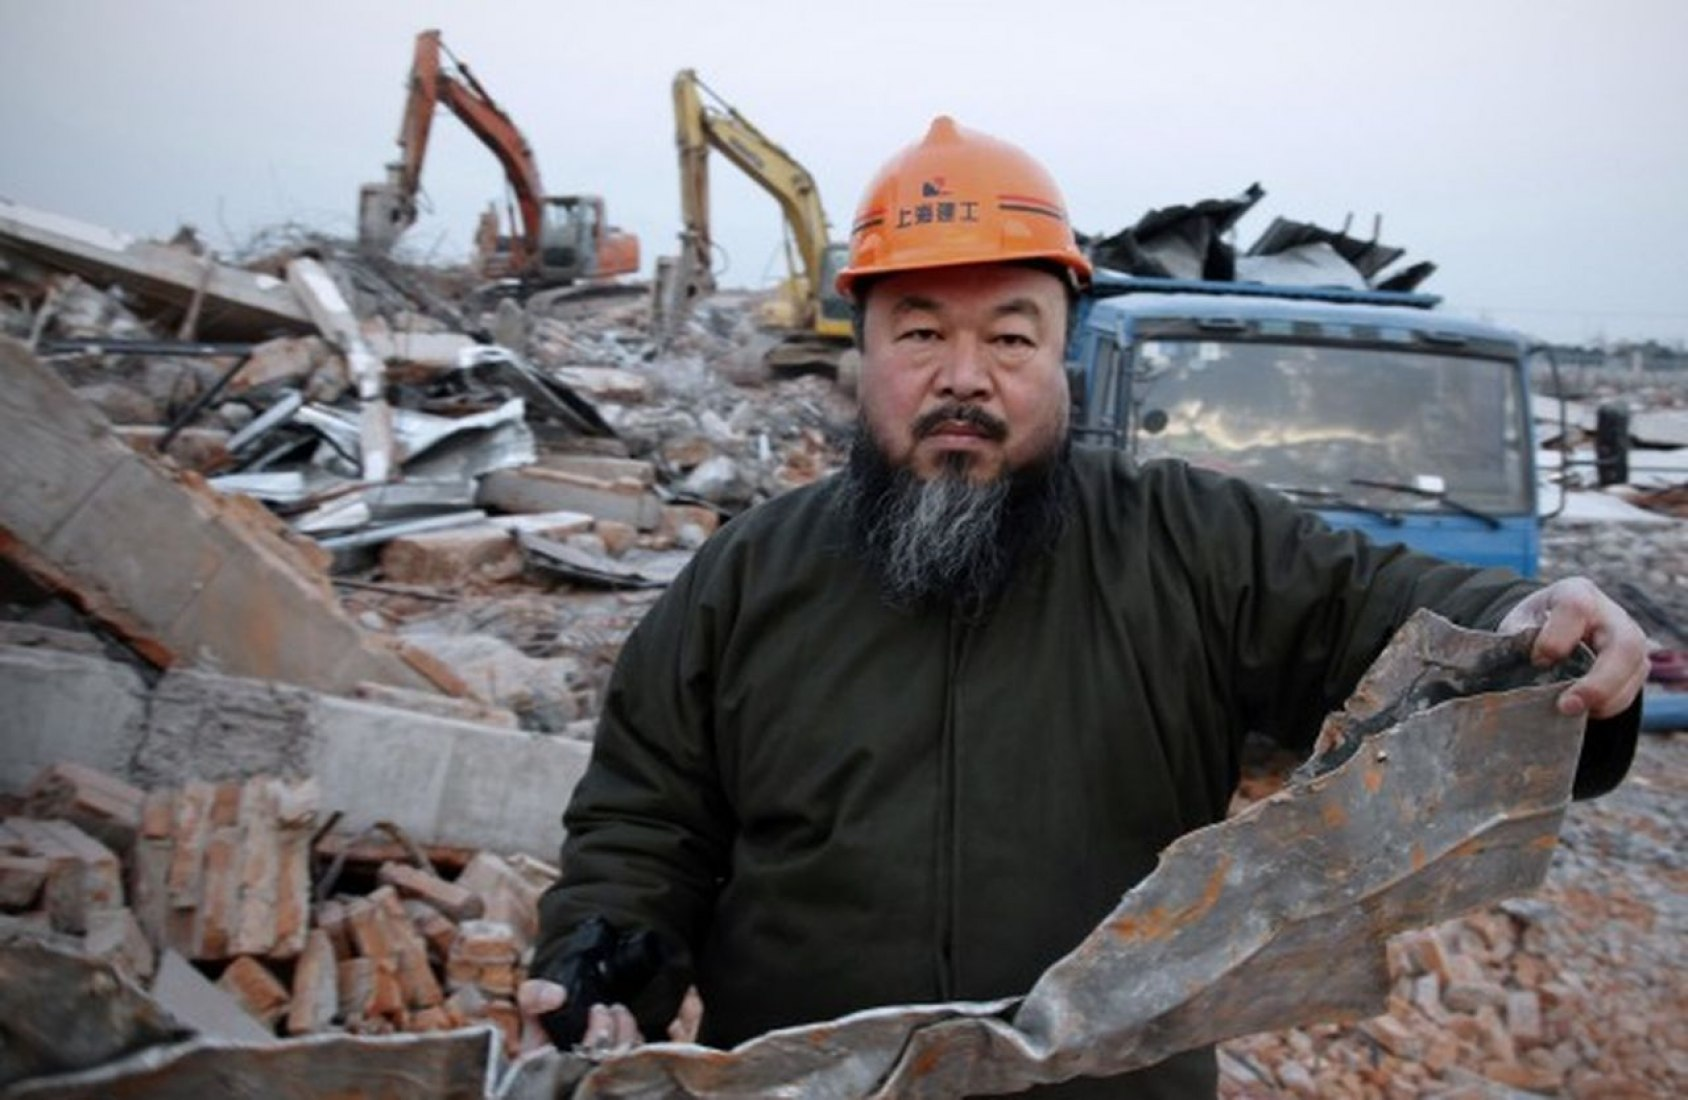 AI WEIWEI Person of the Year TIME